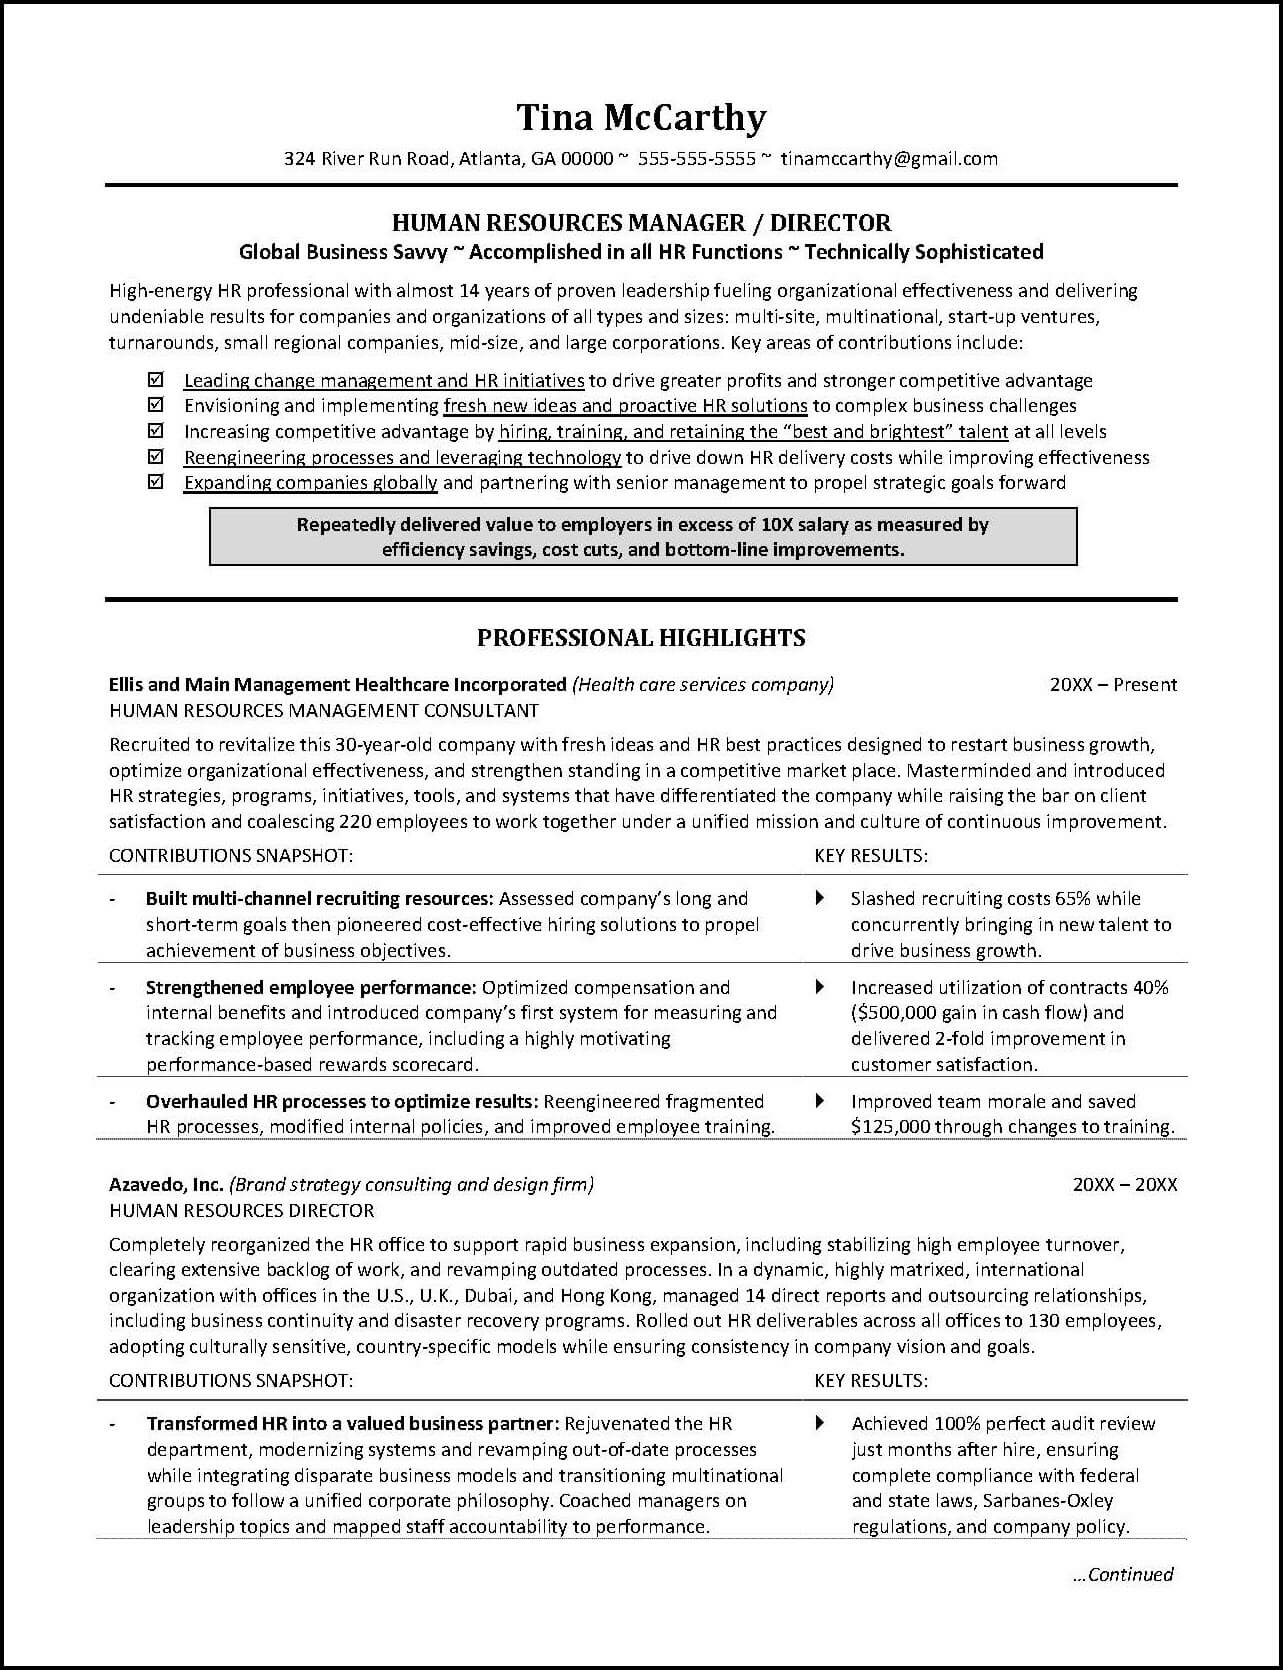 powerful human resources resume example this sample human resources resume is just an example to show the quality and style of our professional resume writing services